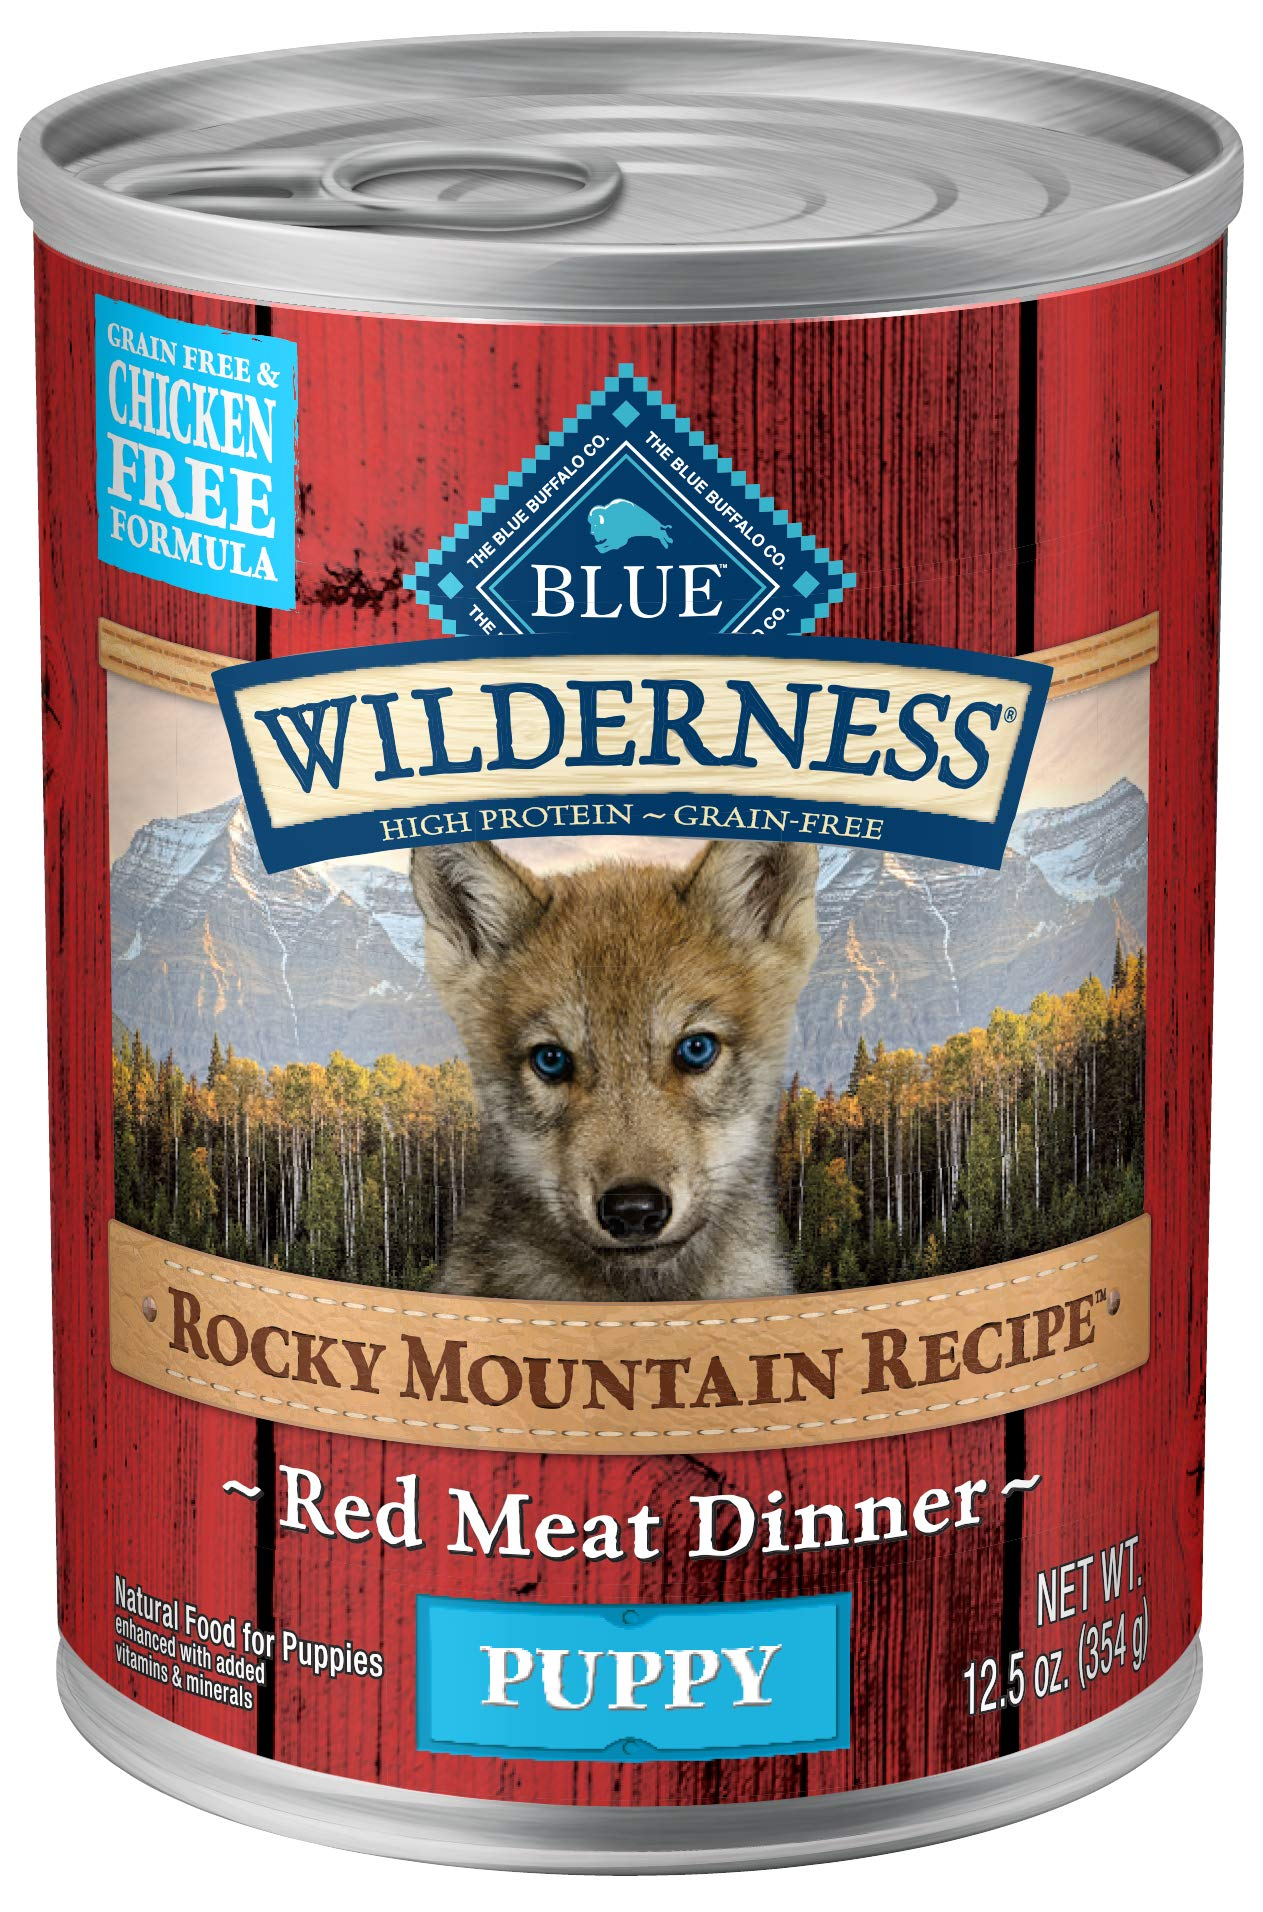 Blue Buffalo Wilderness Rocky Mountain Recipe High Protein Grain Free, Natural Puppy Wet Dog Food, Red Meat 12.5-oz can (pack of 12) by BLUE BUFFALO